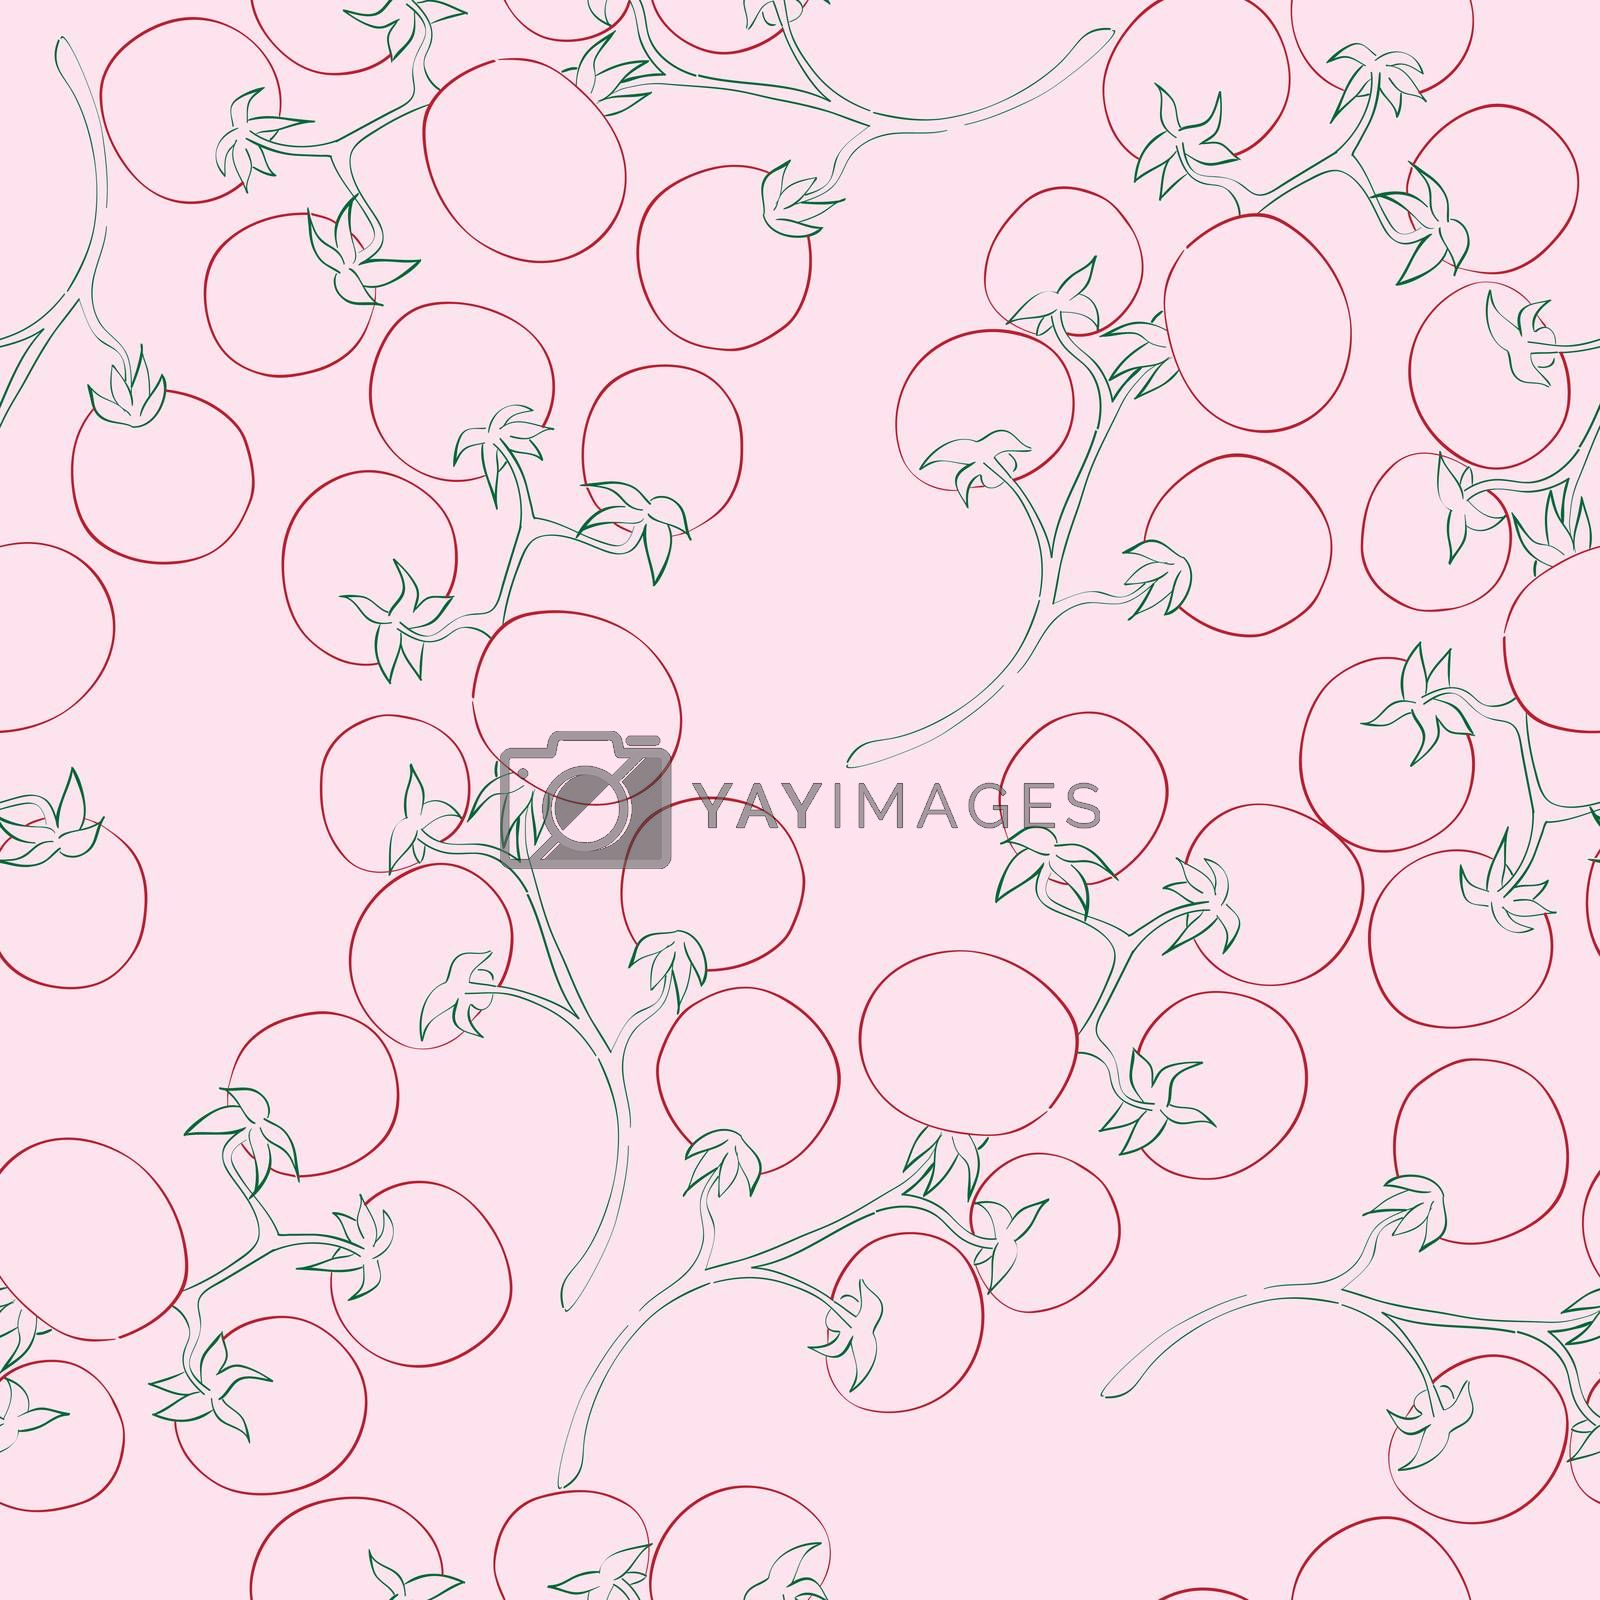 Seamless pattern with doodle illustrations of cherry-tomatoes ovev a pink background